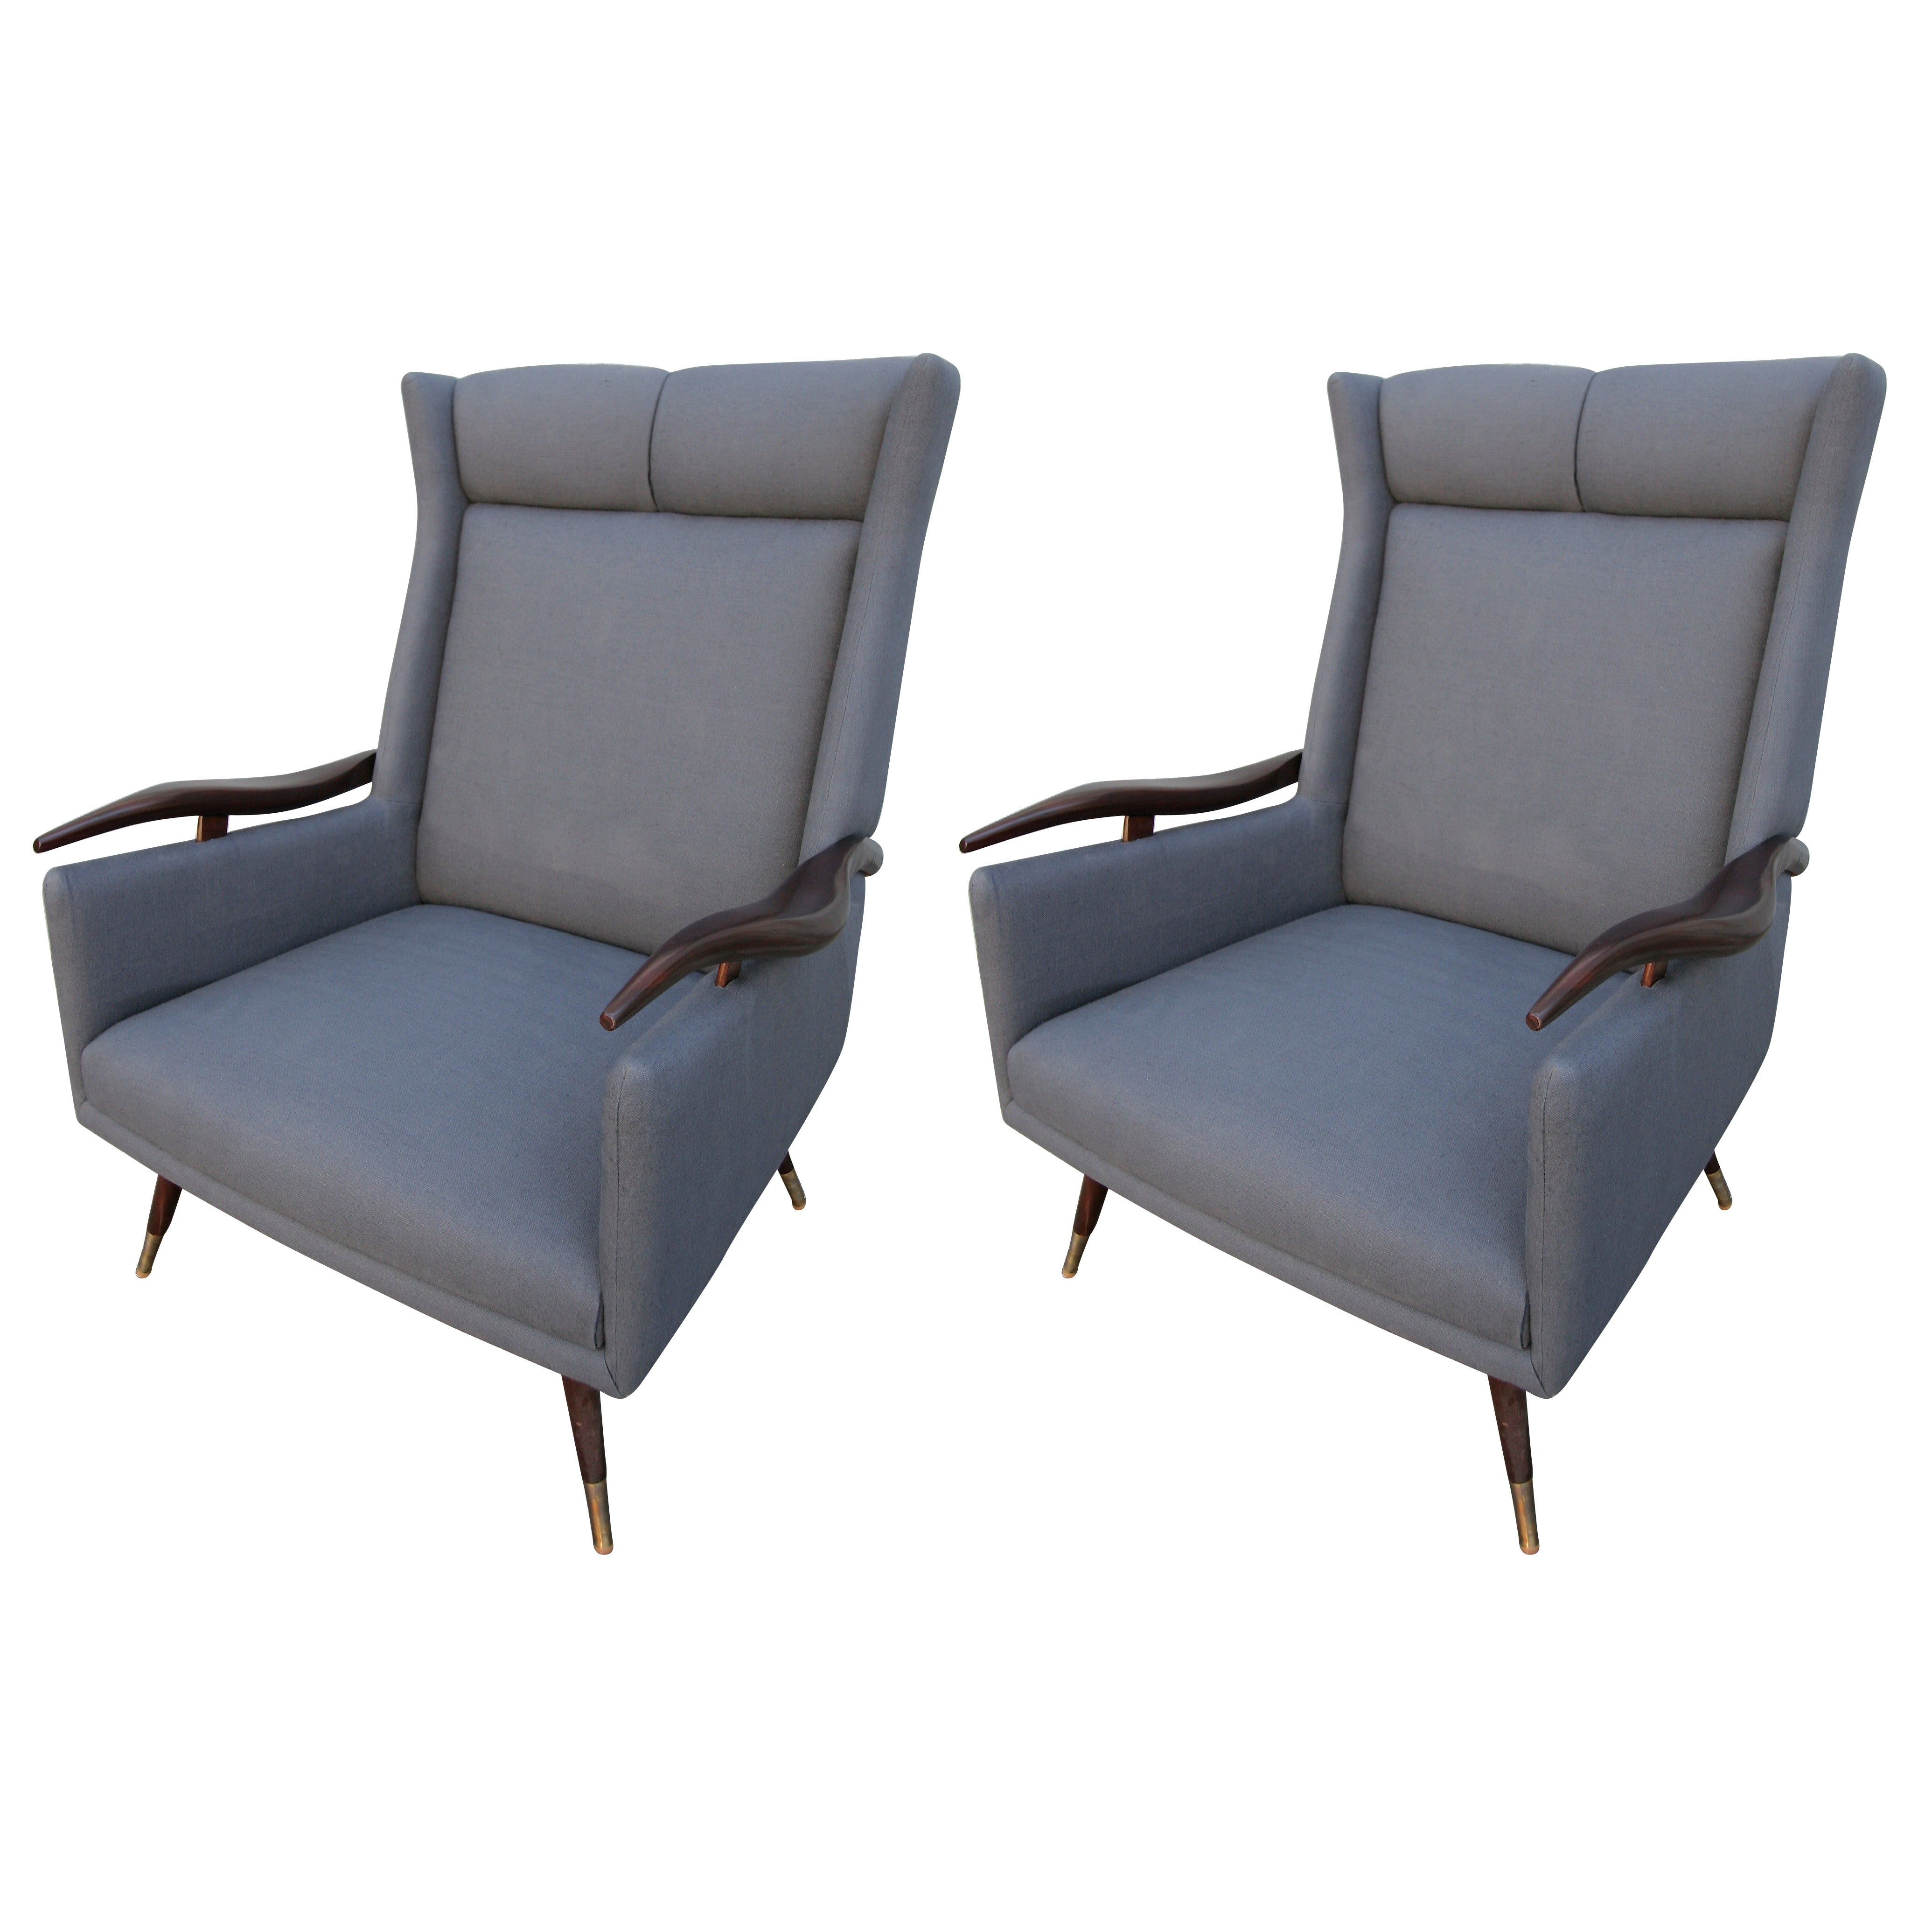 Pair of 1950s Brazilian Lounge / Armchairs Chairs